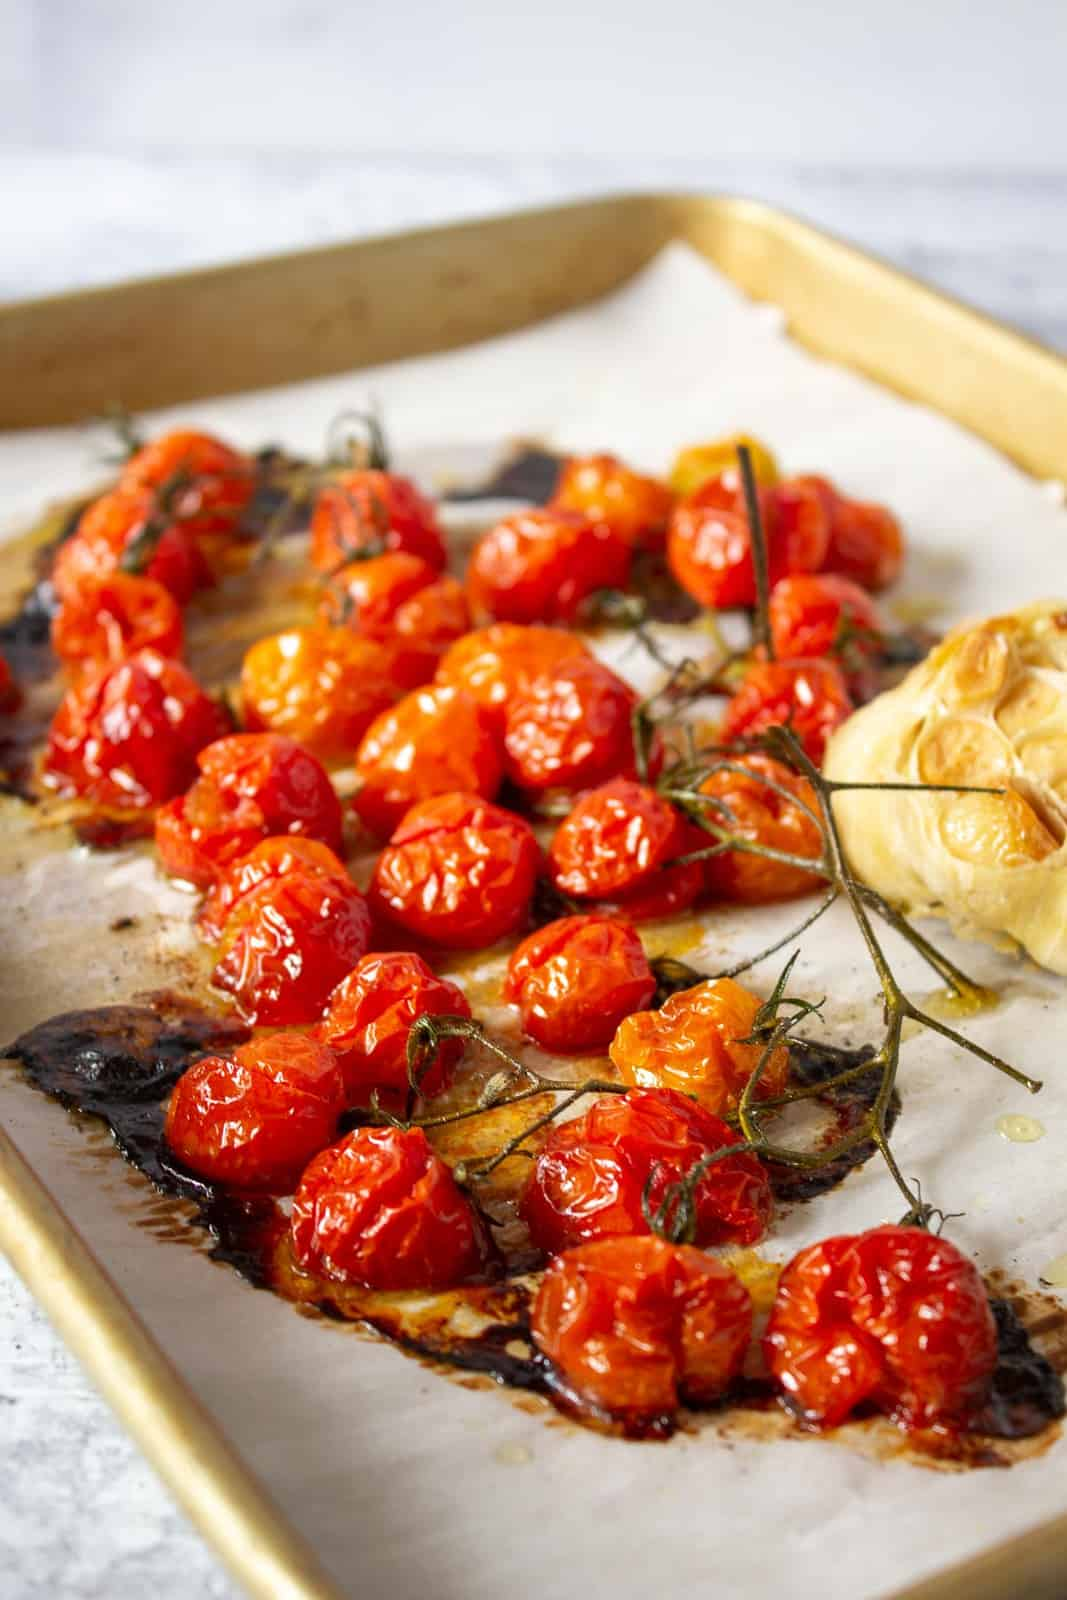 A baking sheet filled with oven roasted cherry tomatoes and roasted garlic.